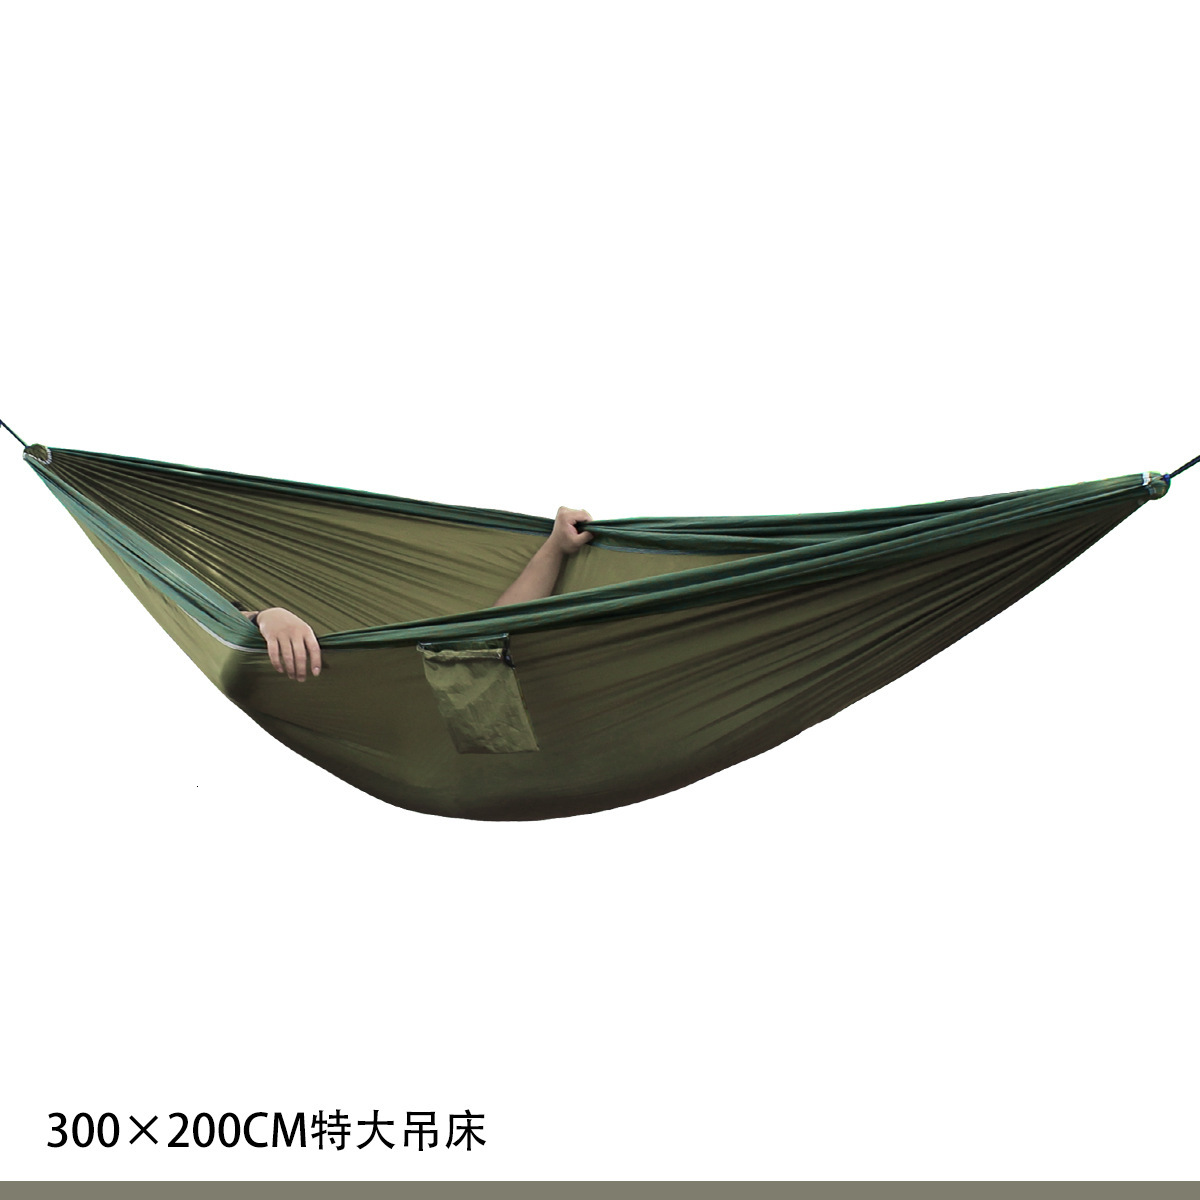 Outdoors Parachute Cloth Hammock Garden Hanging Chair 300*200cm Camping Swings Double Hammock